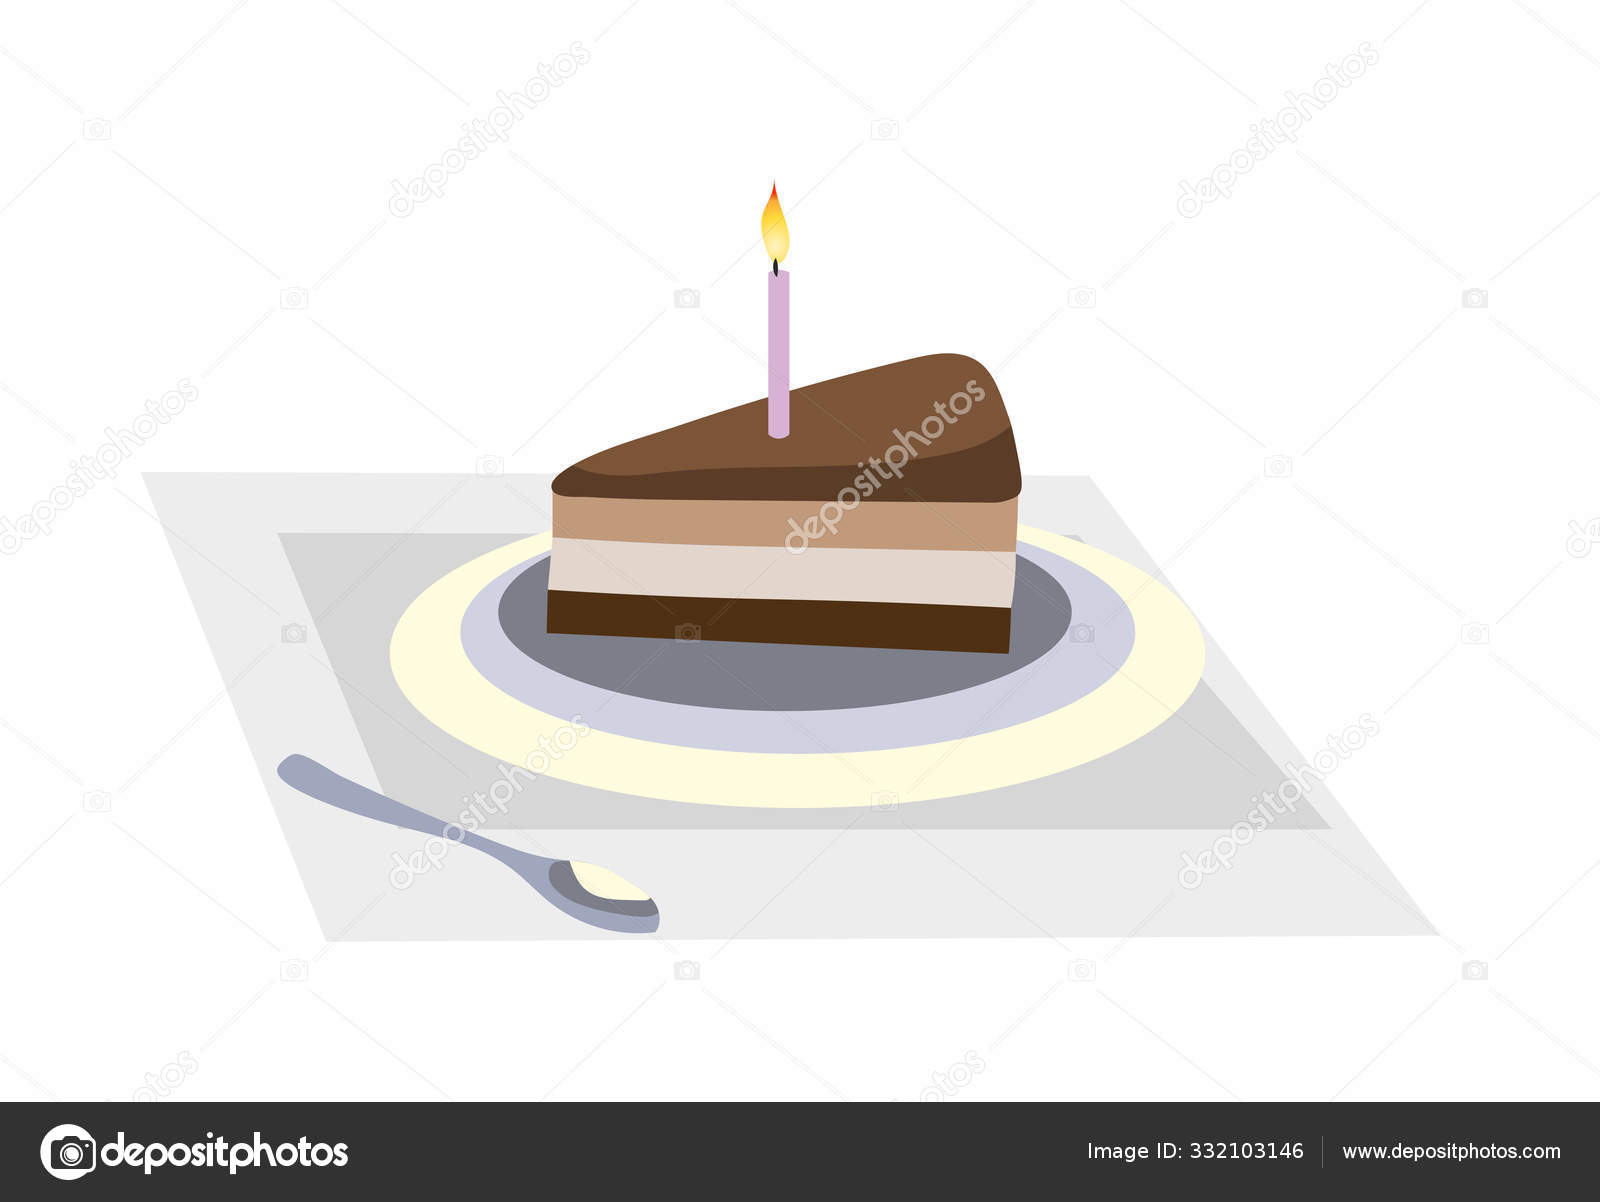 Cool Birthday Cake Candle Celebration Birthday Stock Vector Funny Birthday Cards Online Alyptdamsfinfo